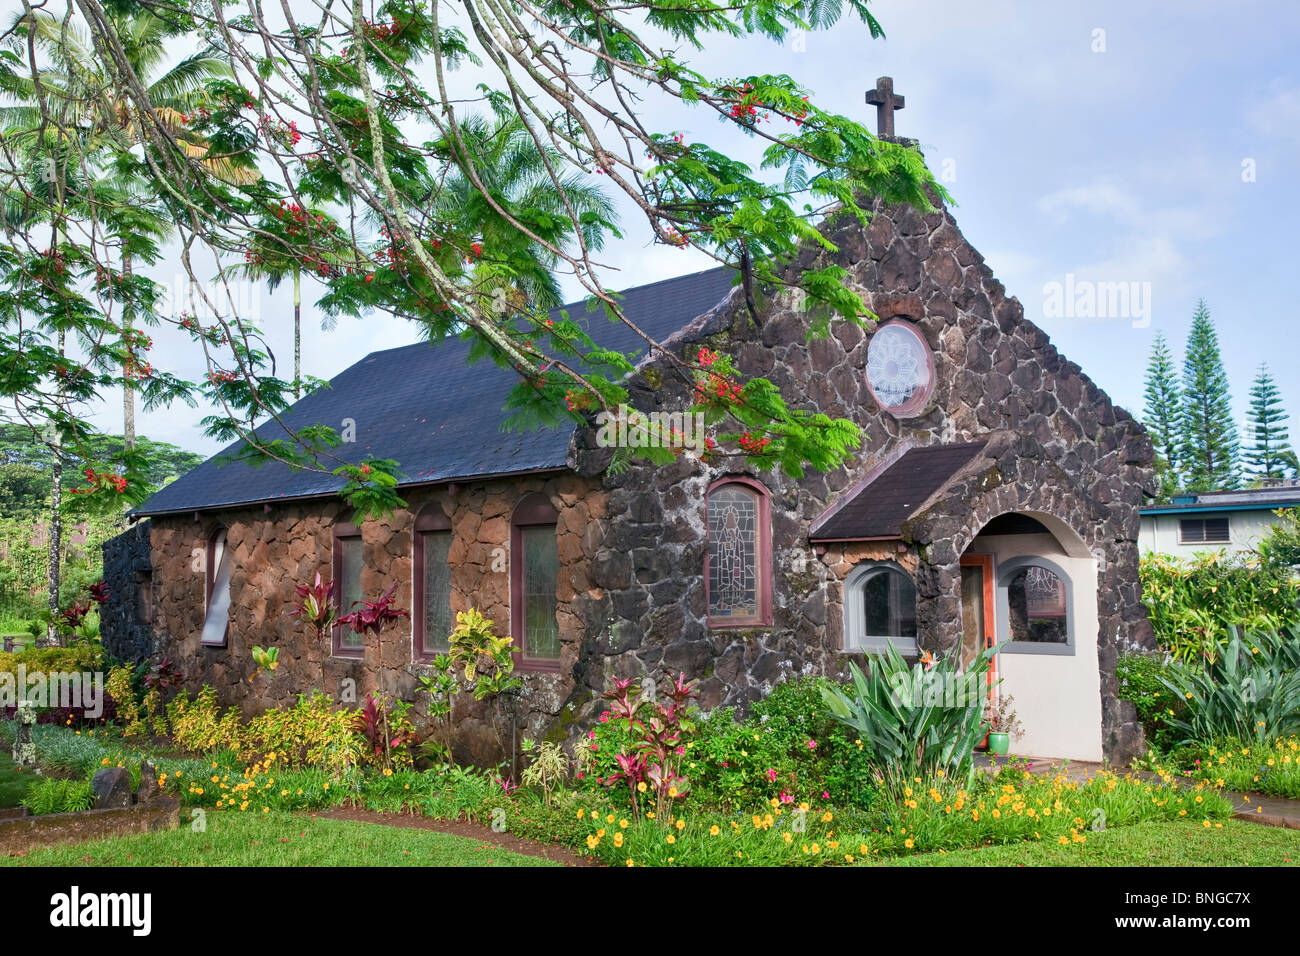 Christ Memorial Episcopal Church. Kauai, Hawaii. - Stock Image